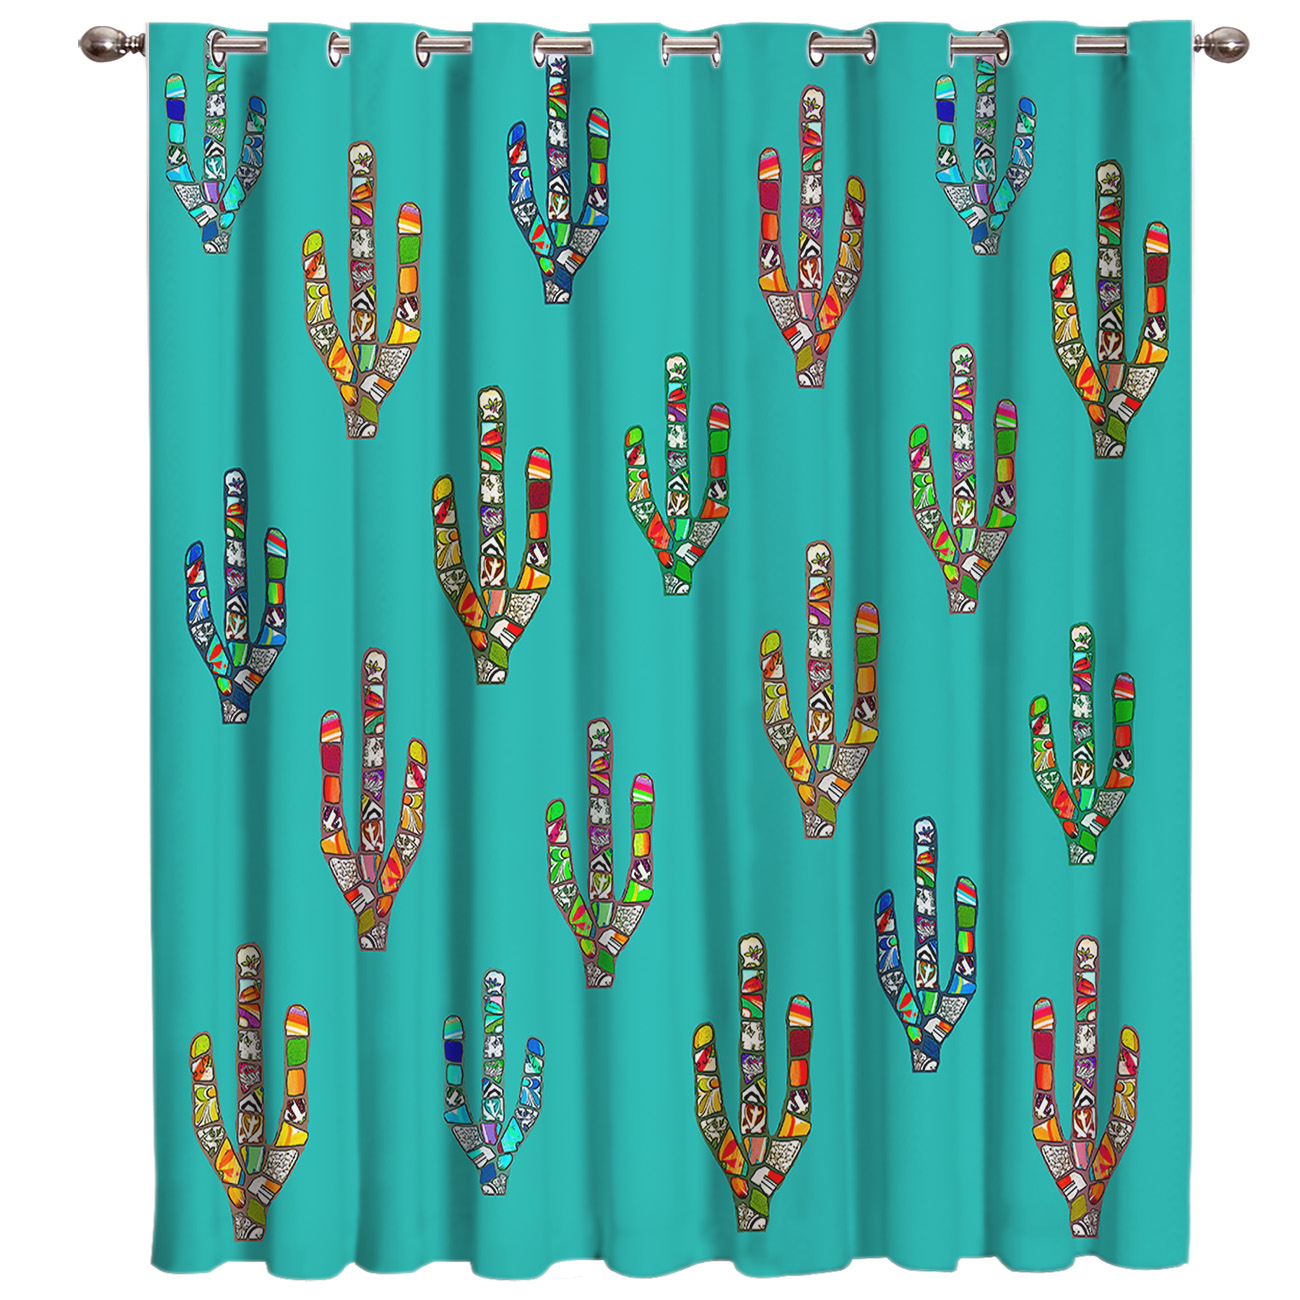 Cactus Geometric Design Window Treatments Curtains Valance Window Curtains Dark Curtain Lights Bedroom Outdoor Indoor